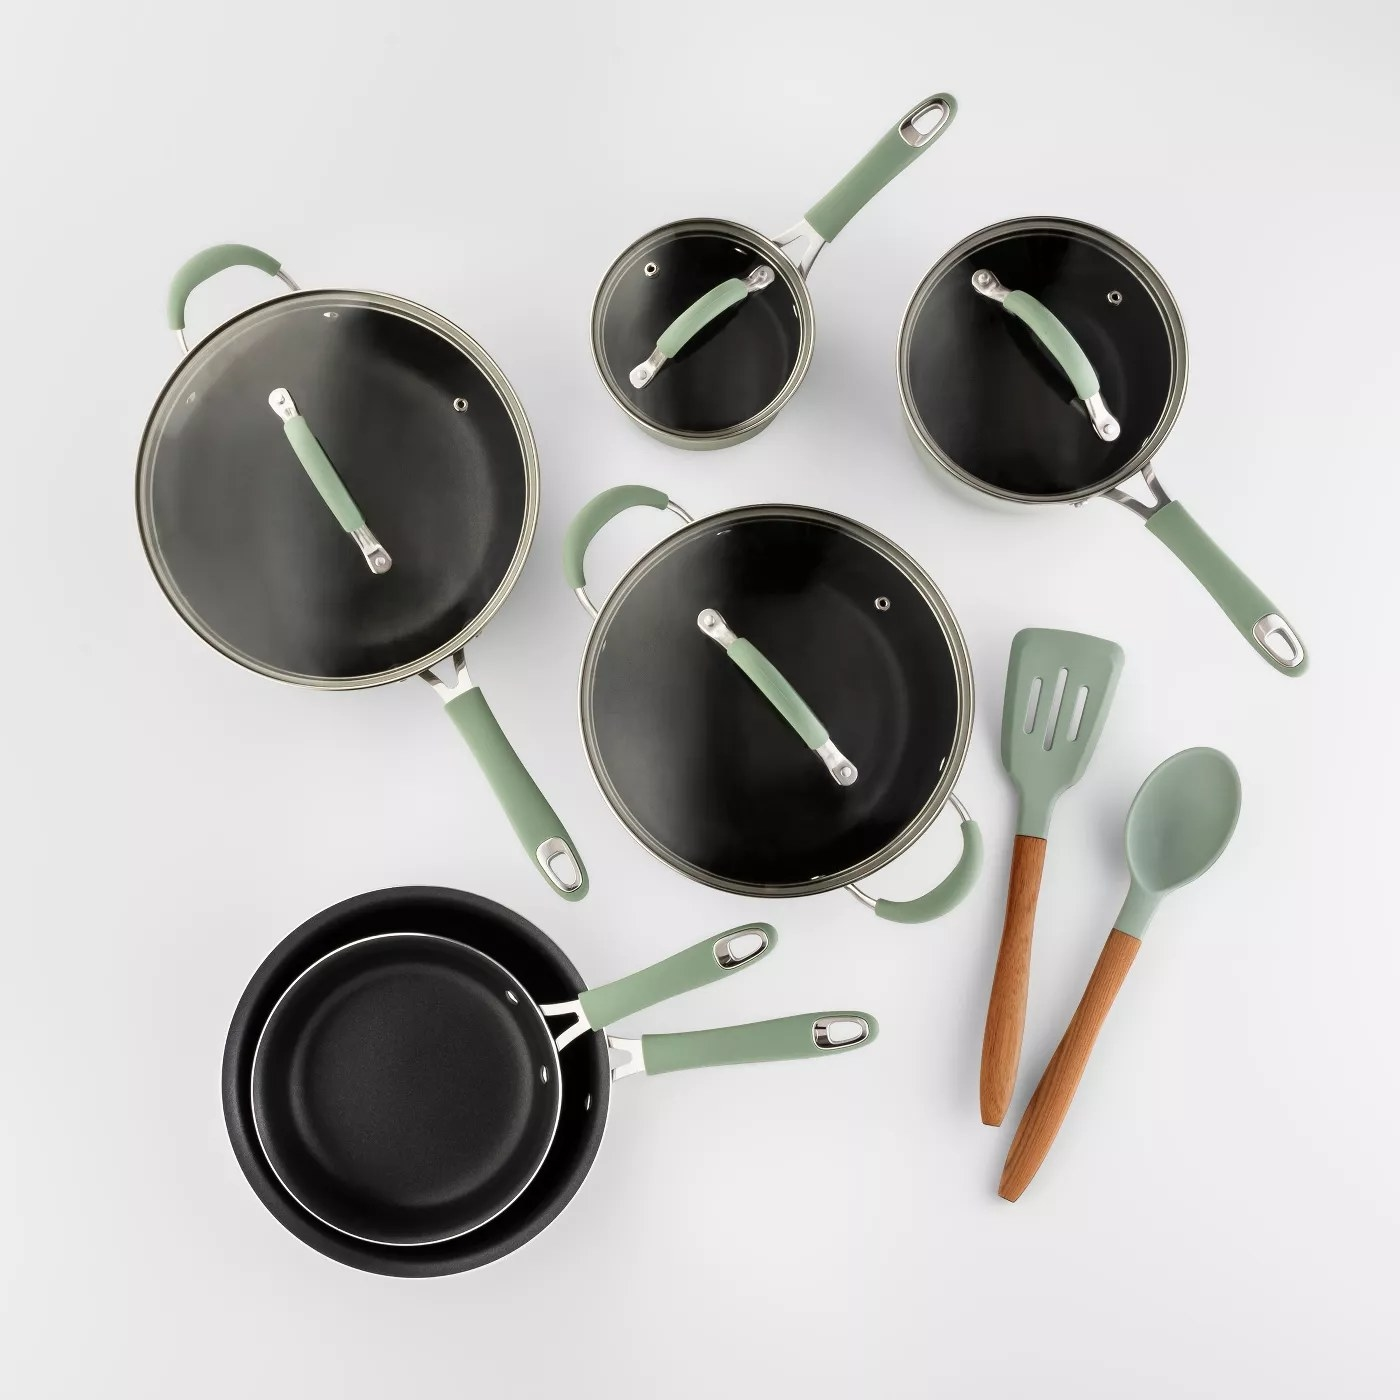 The cookware and kitchen tools in green